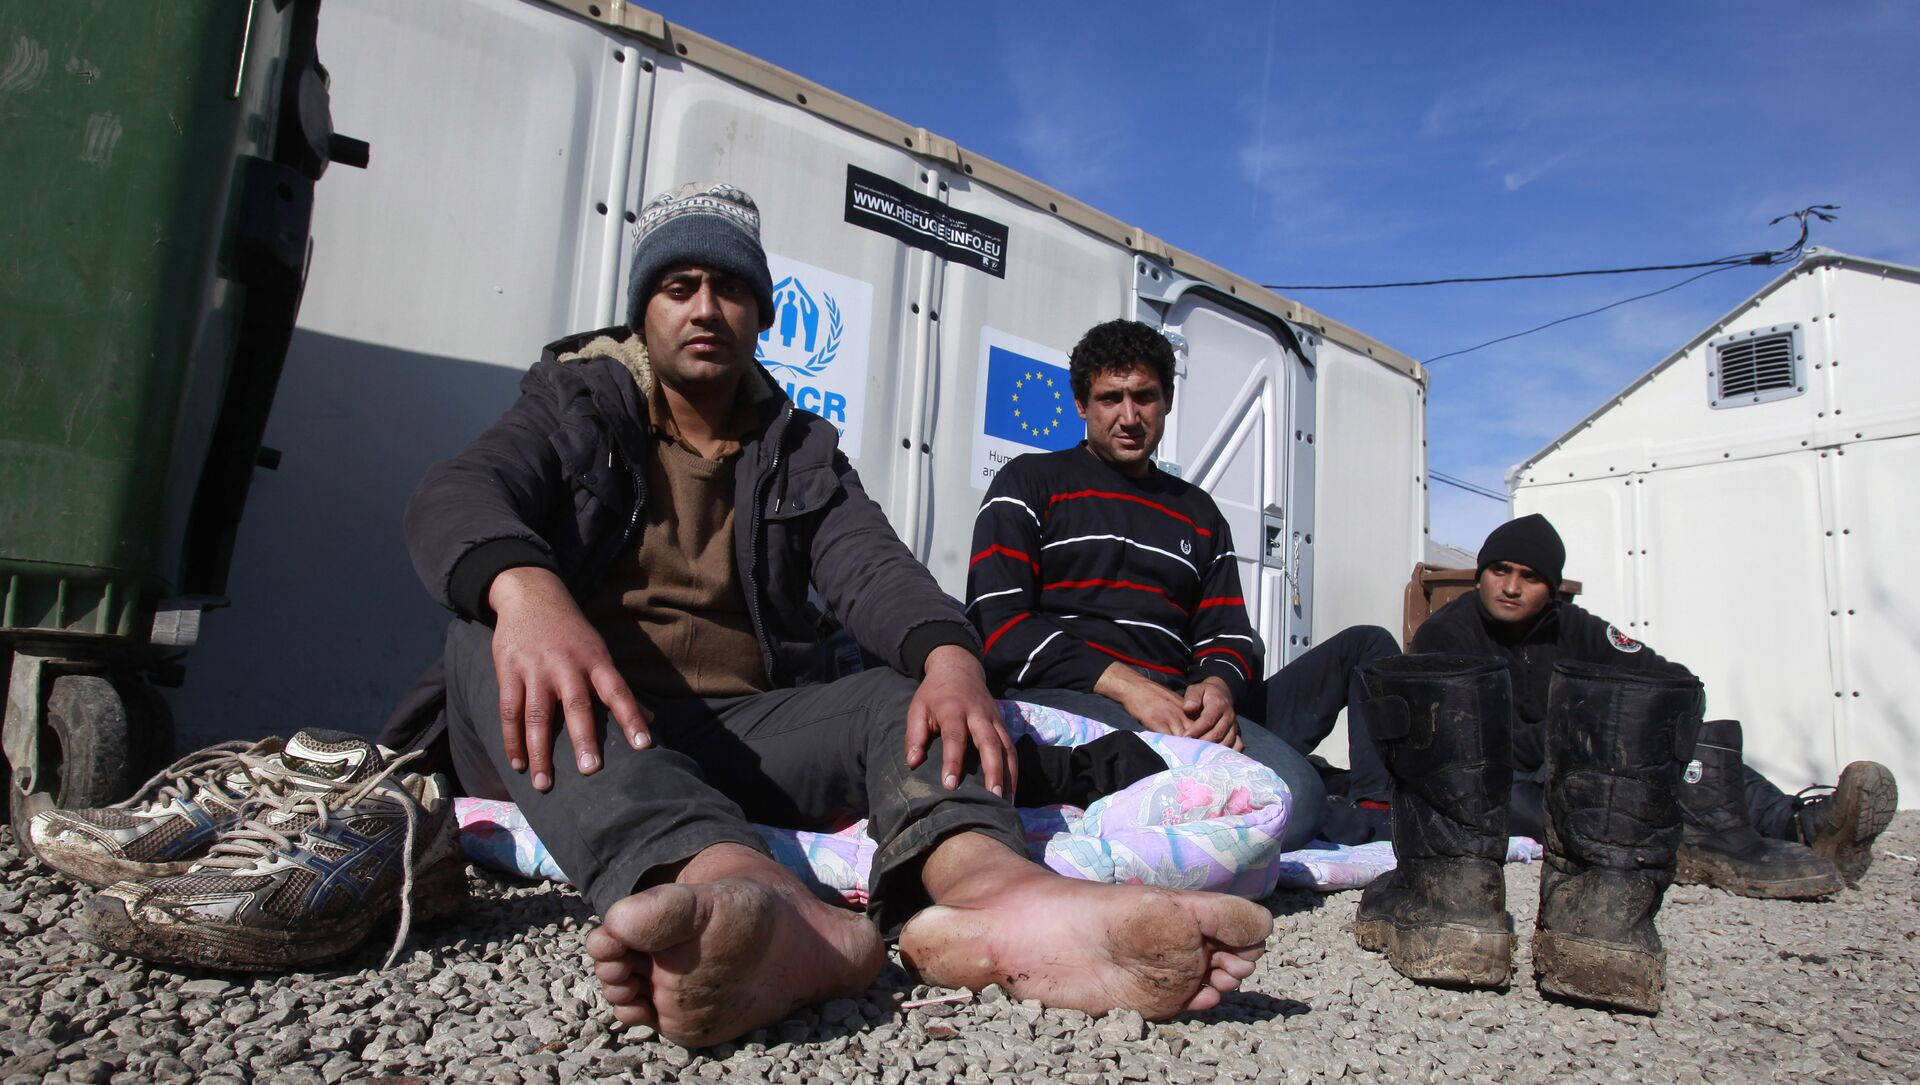 Refugees who say they come from Afghanistan, rest at the transit center for refugees near northern Macedonian village of Tabanovce, Tuesday, Feb. 2, 2016 - Sputnik International, 1920, 02.08.2021